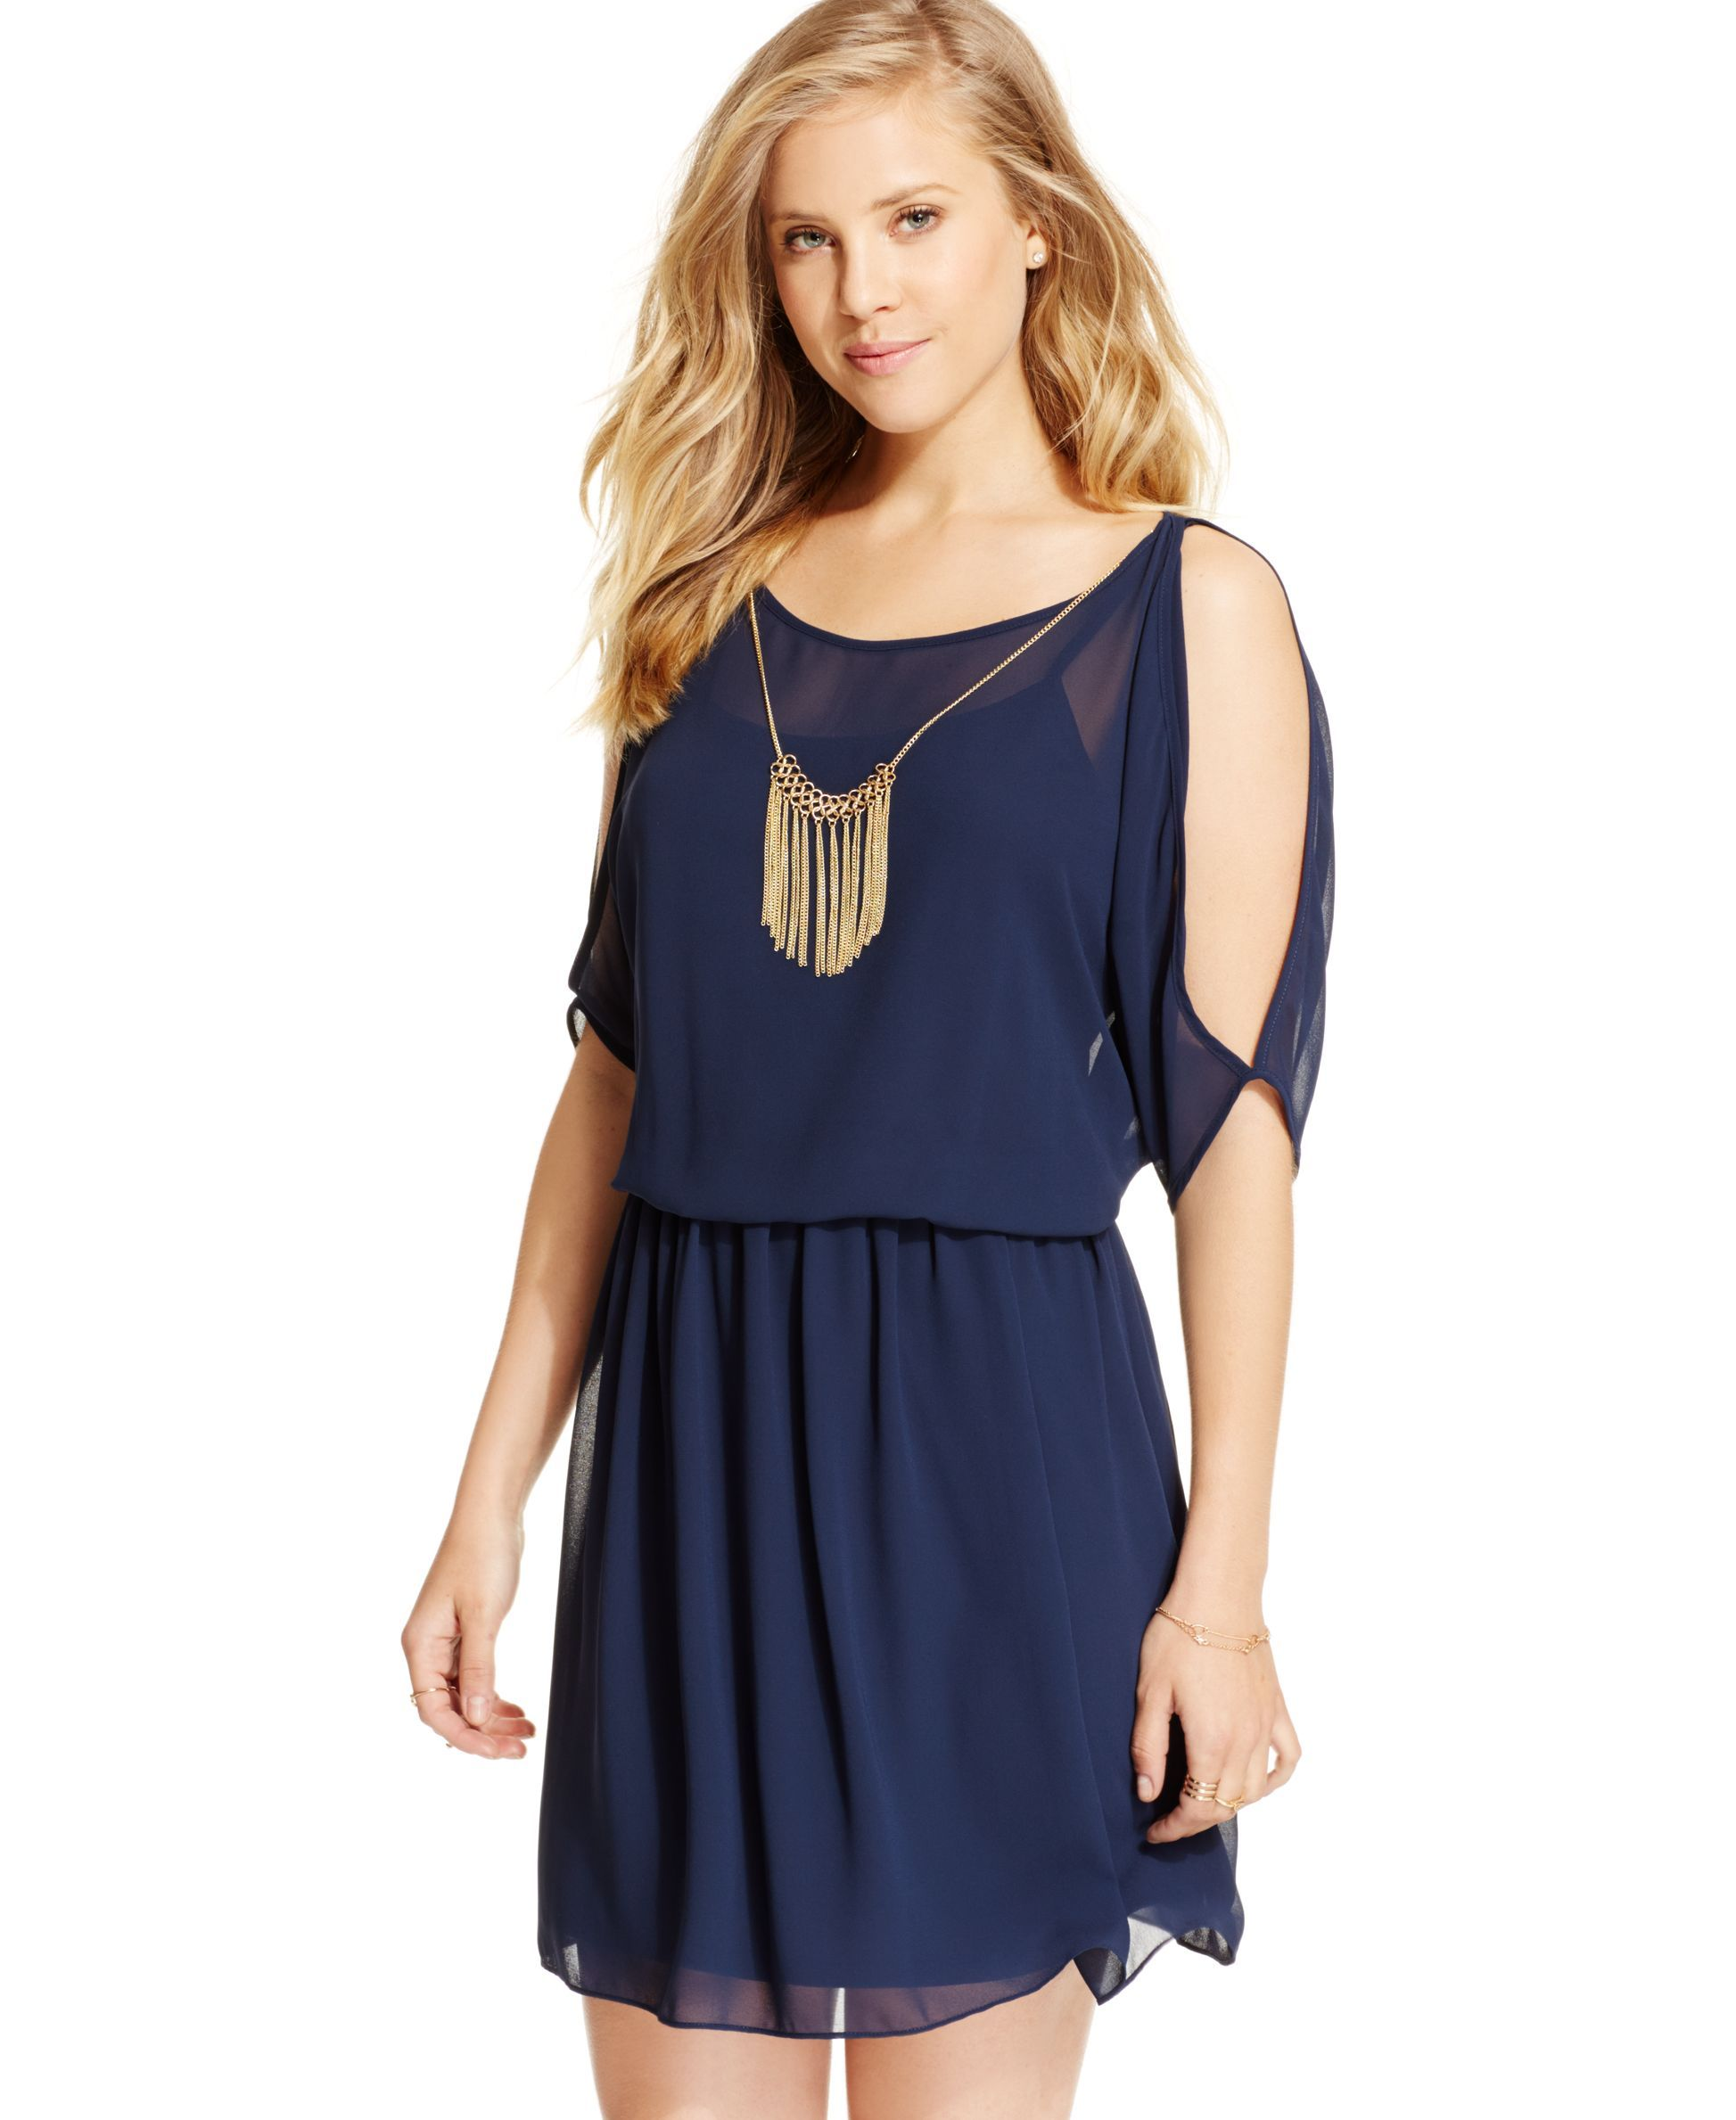 Bcx Juniors' Cold-Shoulder Necklace Dress | Products | Pinterest ...